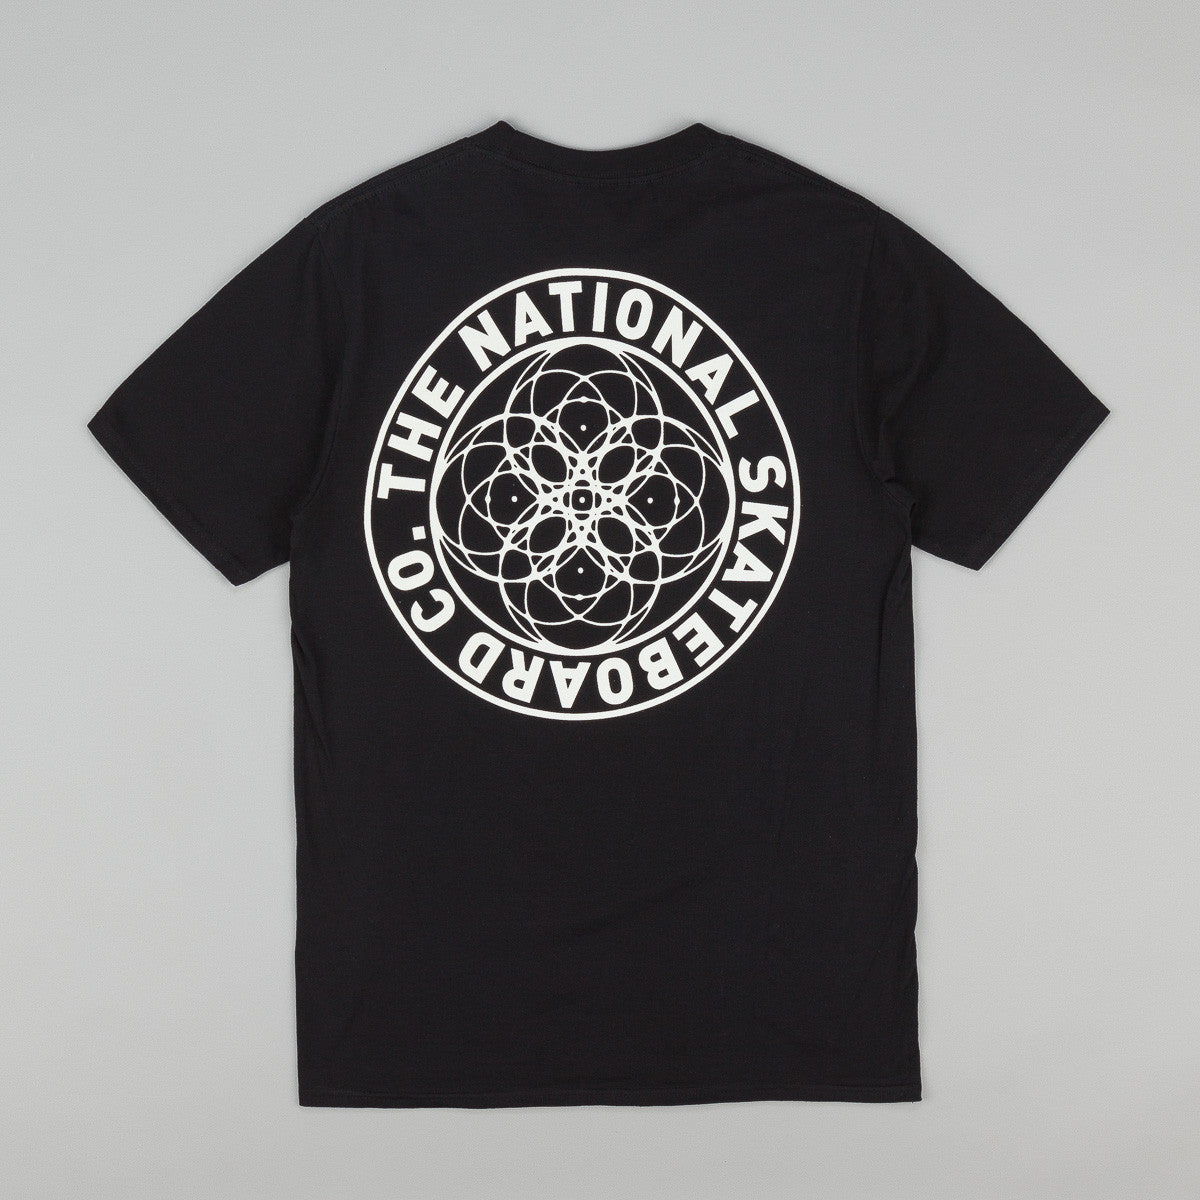 The National Skateboard Co Universal T-Shirt - Black